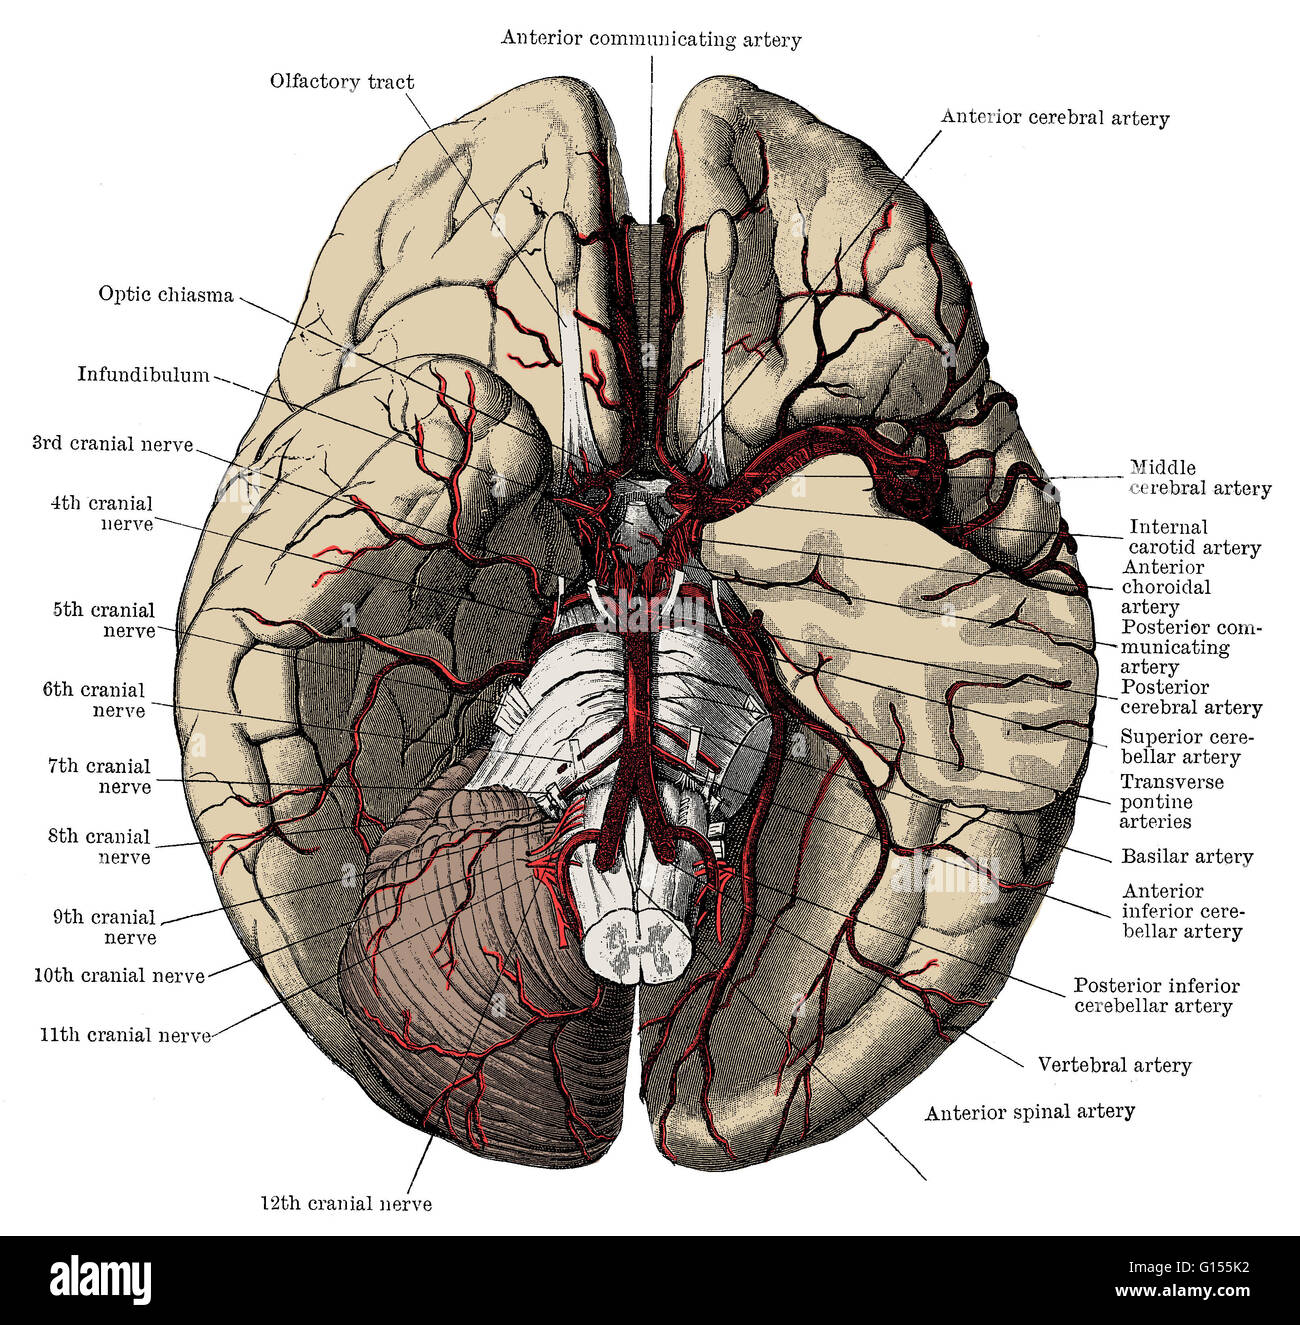 Arteries Of The Base Of The Brain Including The Circle Of Willis